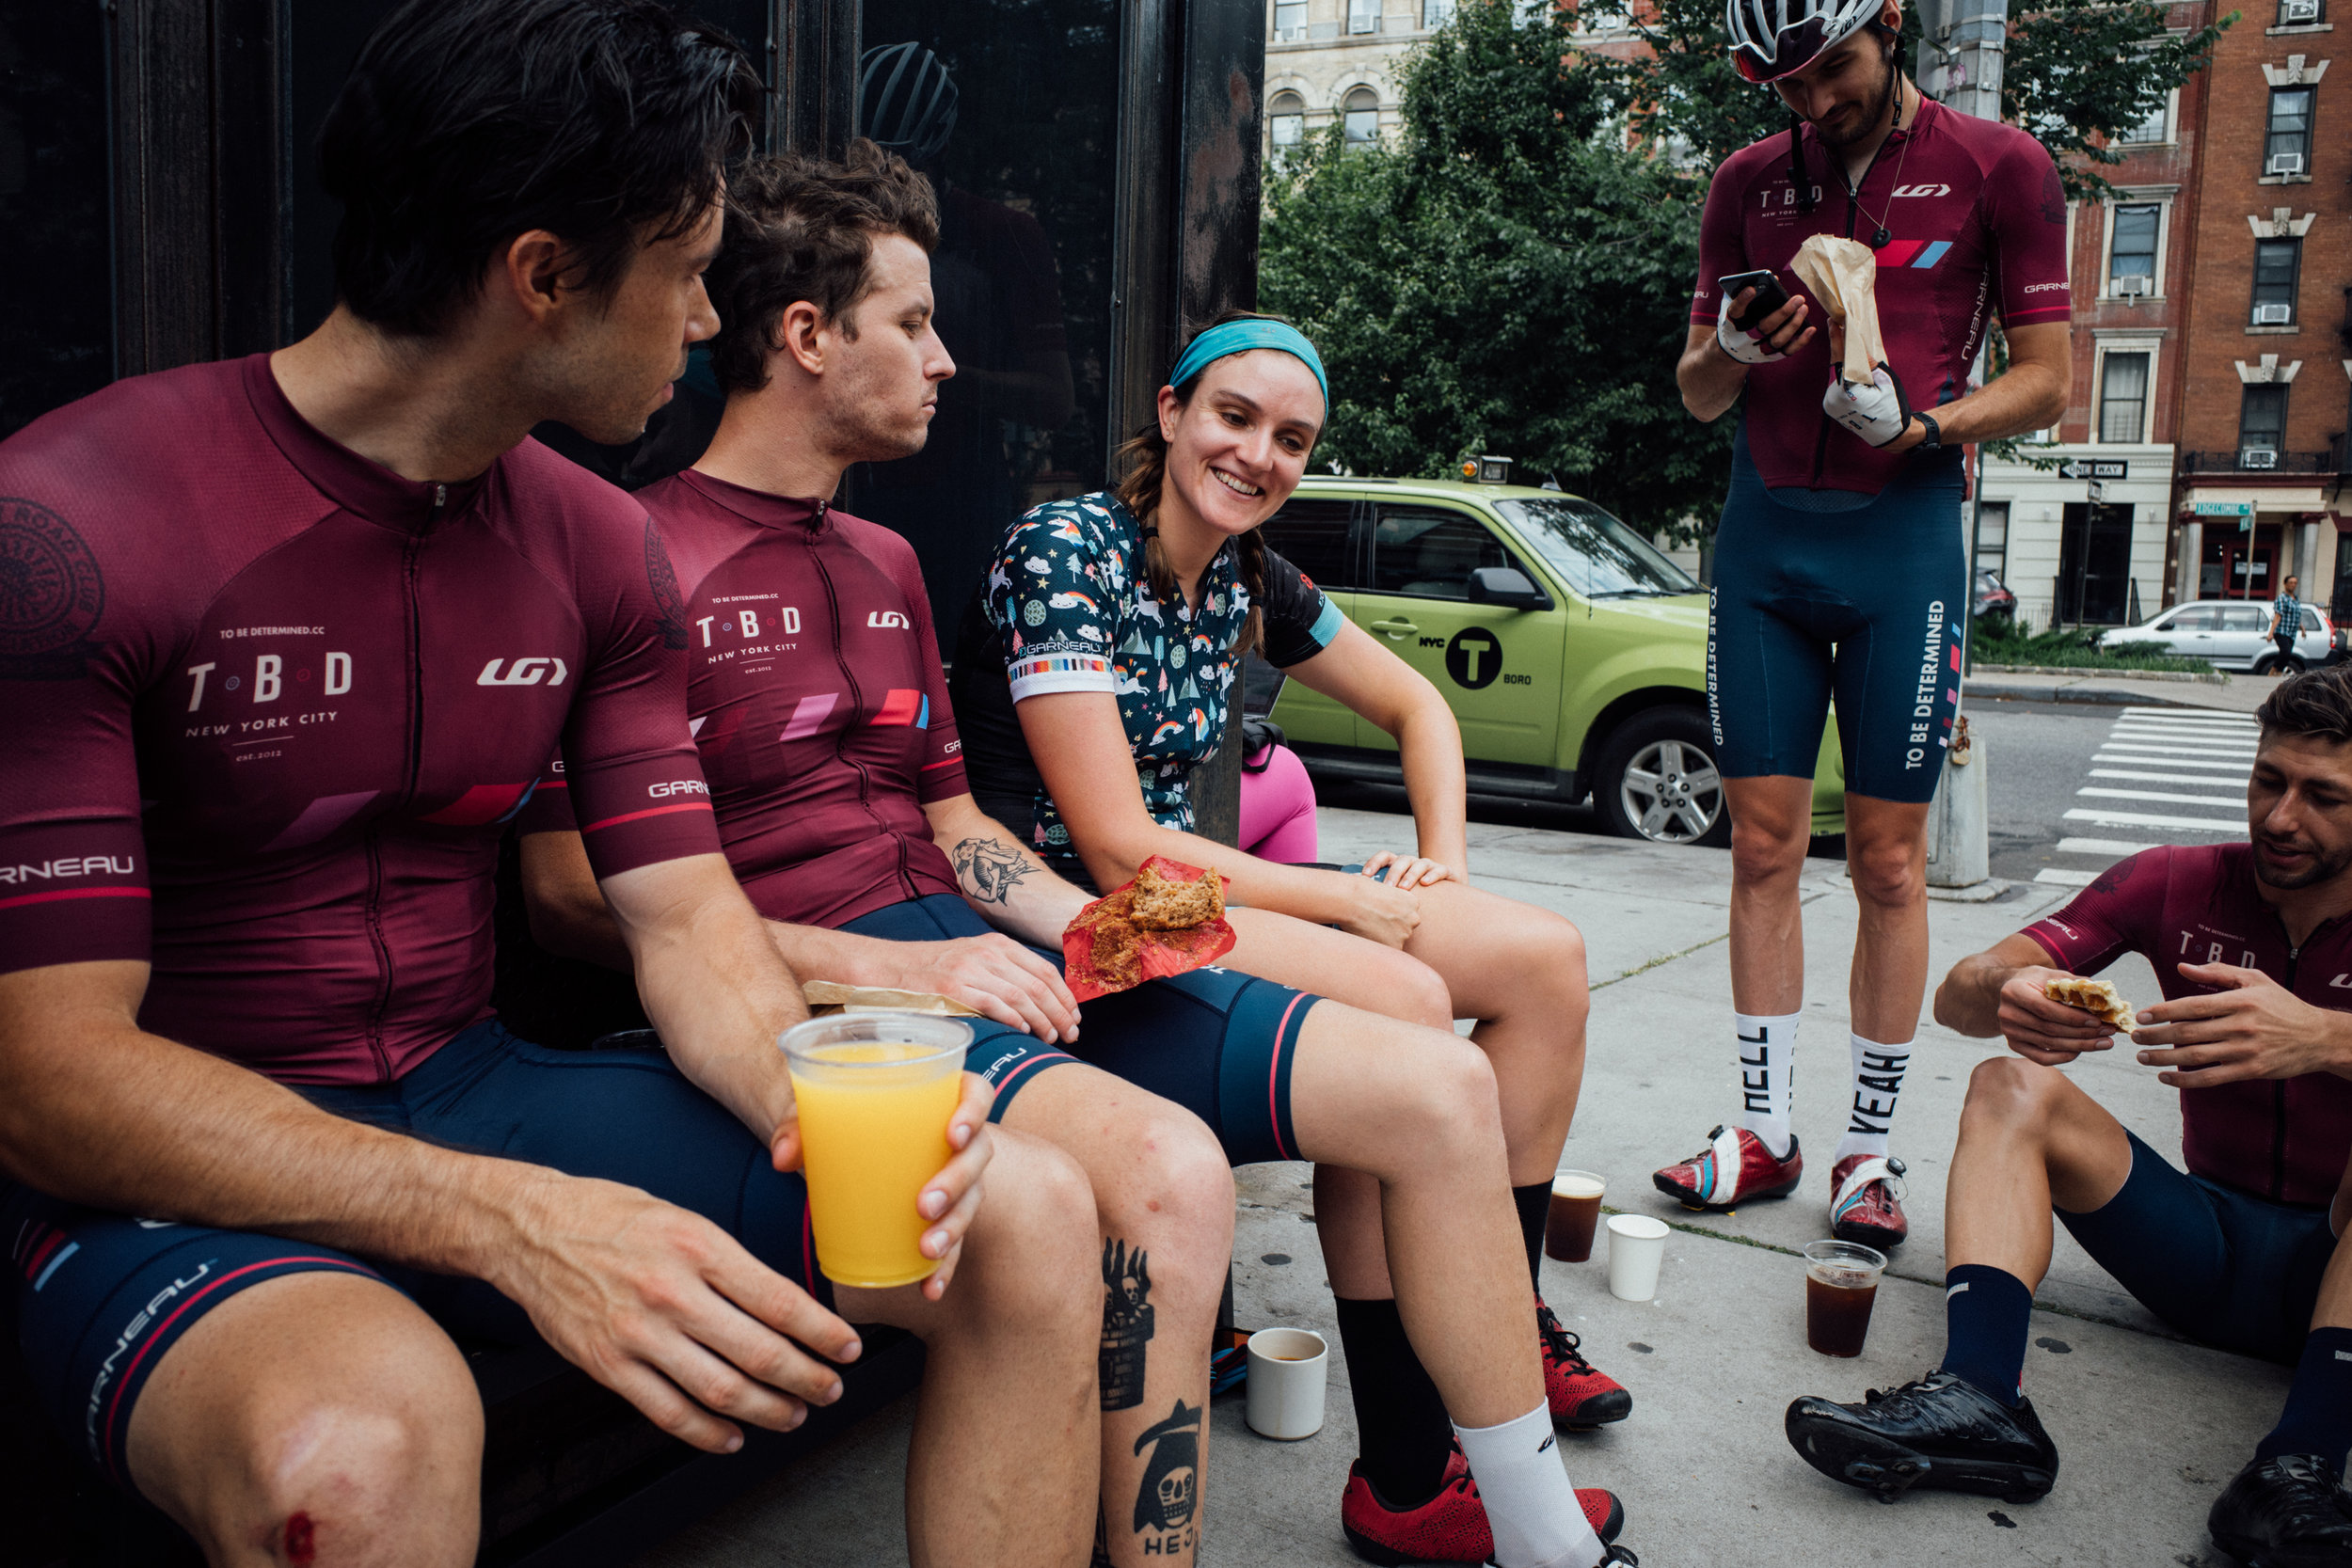 After several simulated race efforts, post ride coffee (and a few beers) with the squad is the perfect way to end a ride.